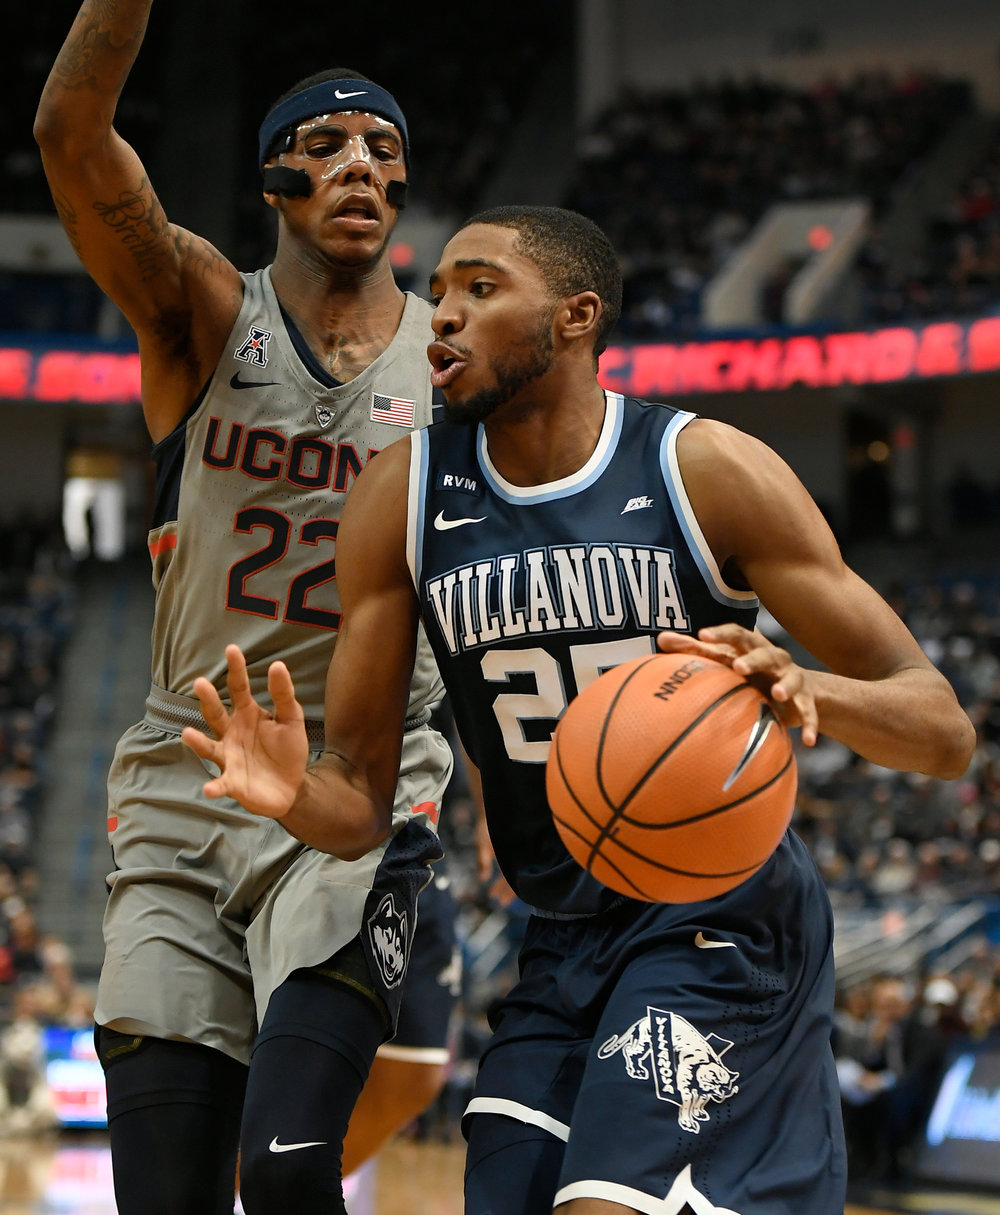 UConn's Terry Larrier, left, guards Villanova's Mikal Bridges during the second half of an NCAA college basketball game, Saturday, Jan. 20, 2018, in Hartford, Conn. (AP Photo/Jessica Hill)